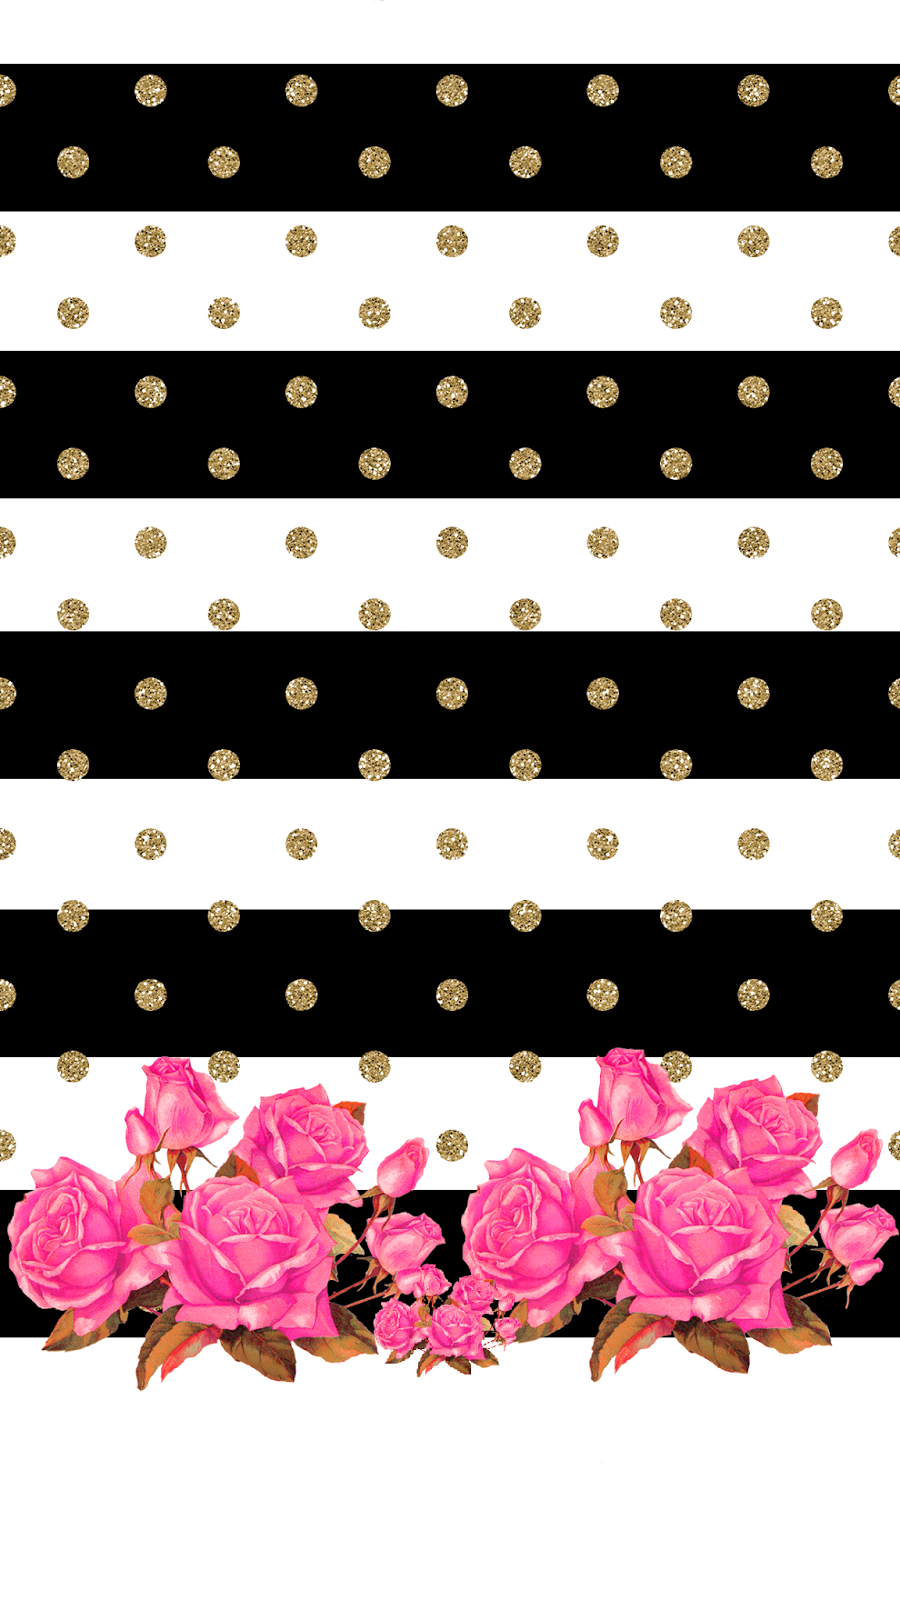 Border frame with black and yellow stripe on white background - Mommy Lhey Vintage Classy Rose Stripe And Polka Dot With Roses Wallpaper